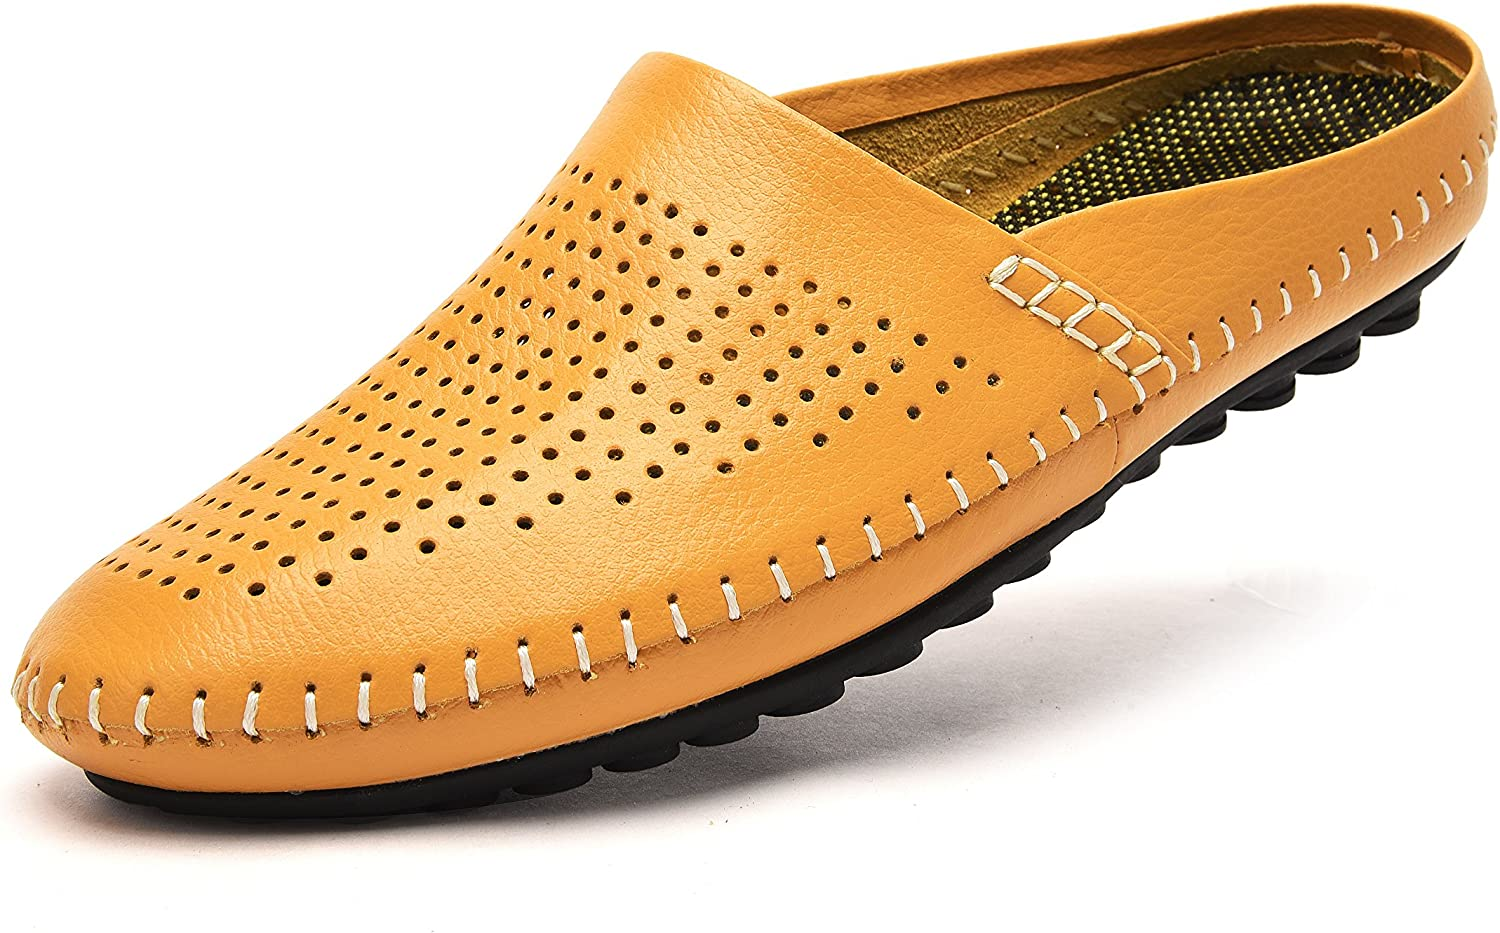 V.J Men's Classic Handsewn Genuine Leather House Slippers Office Slippers Casual Breathable Sandals